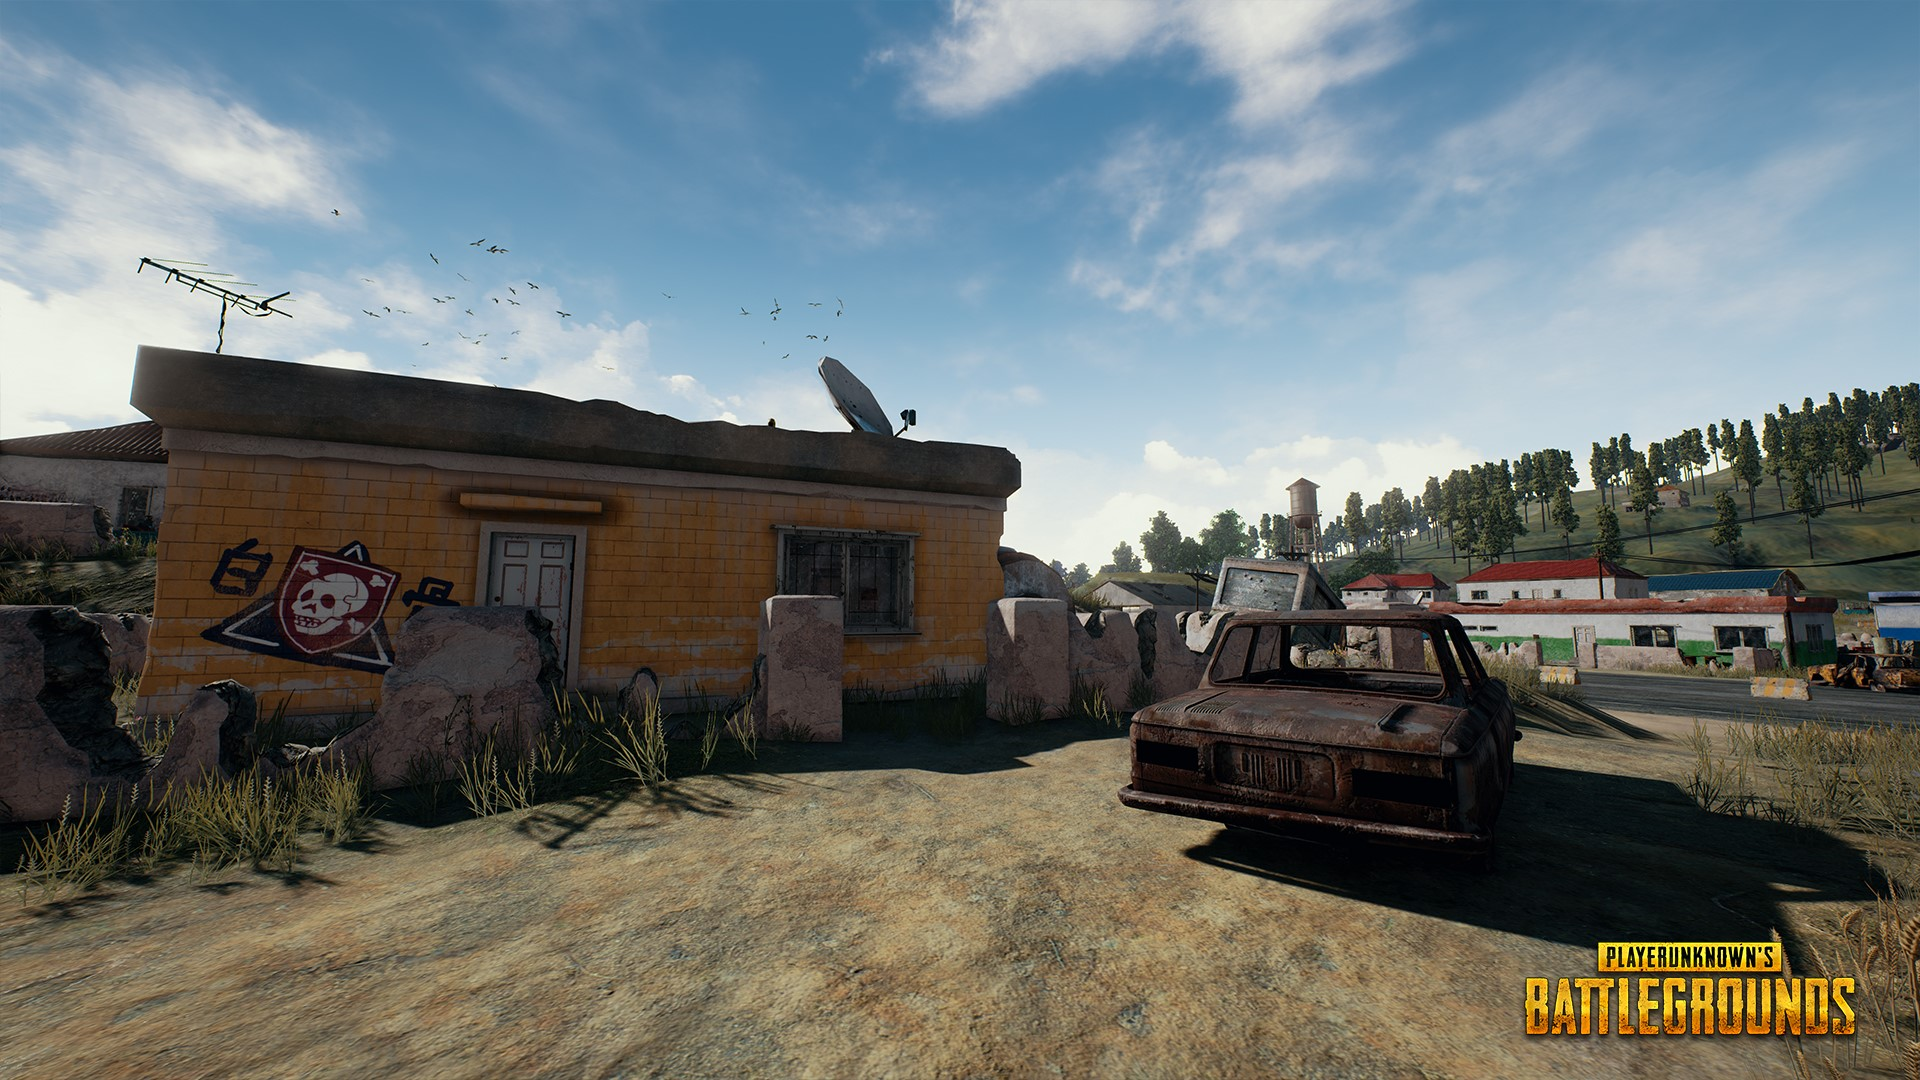 player unknown battlegrounds how to change location